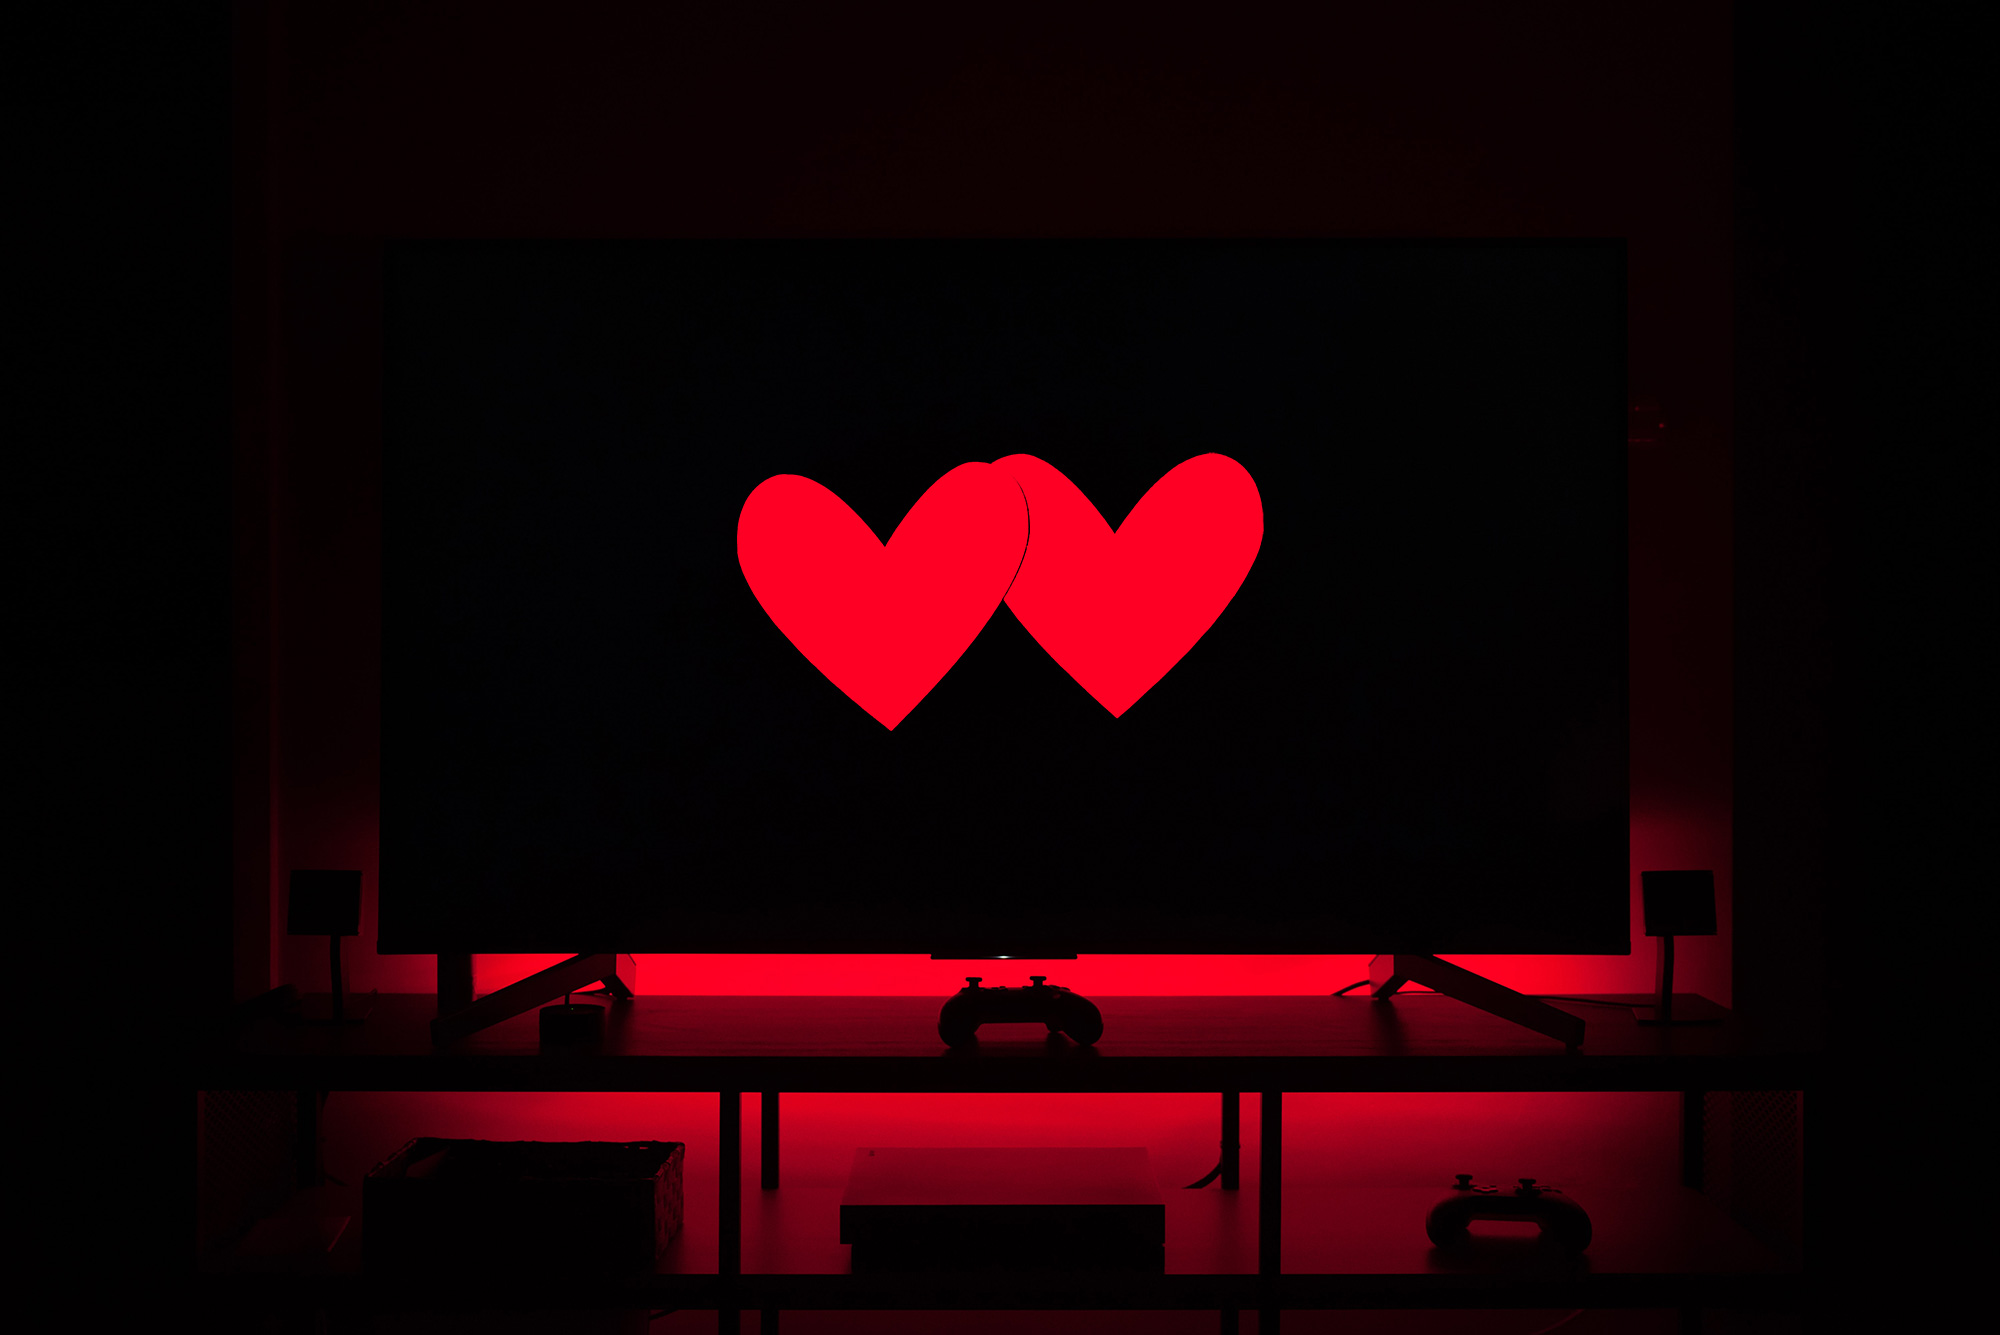 A television screen with two red paper hearts on it.